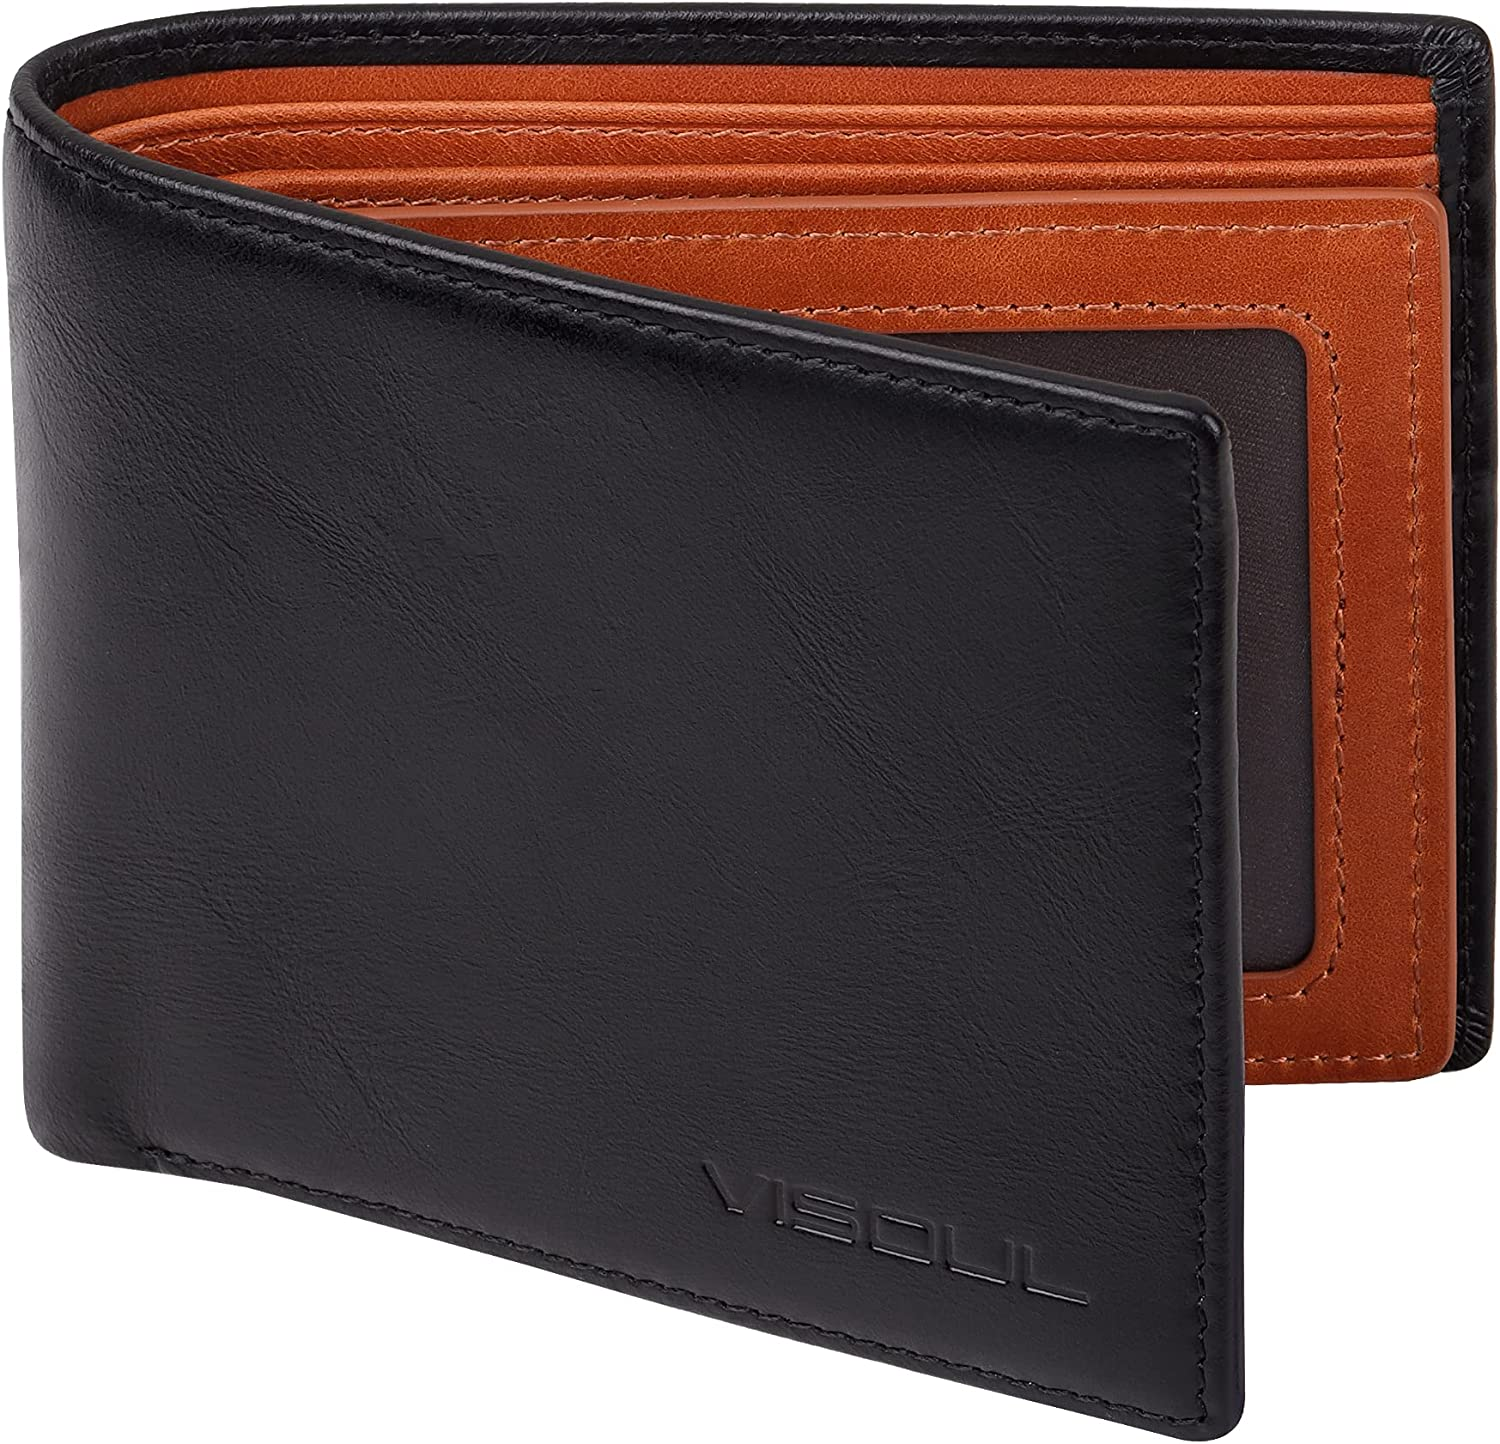 VISOUL Mens Bifold Wallet with 2 ID Windows and 2 Money Compartments, Genuine Leather Multi Card Holder Designer Wallet with RFID Blocking, Stylish Two-tone Back Wallet for Men (Black and Orange)